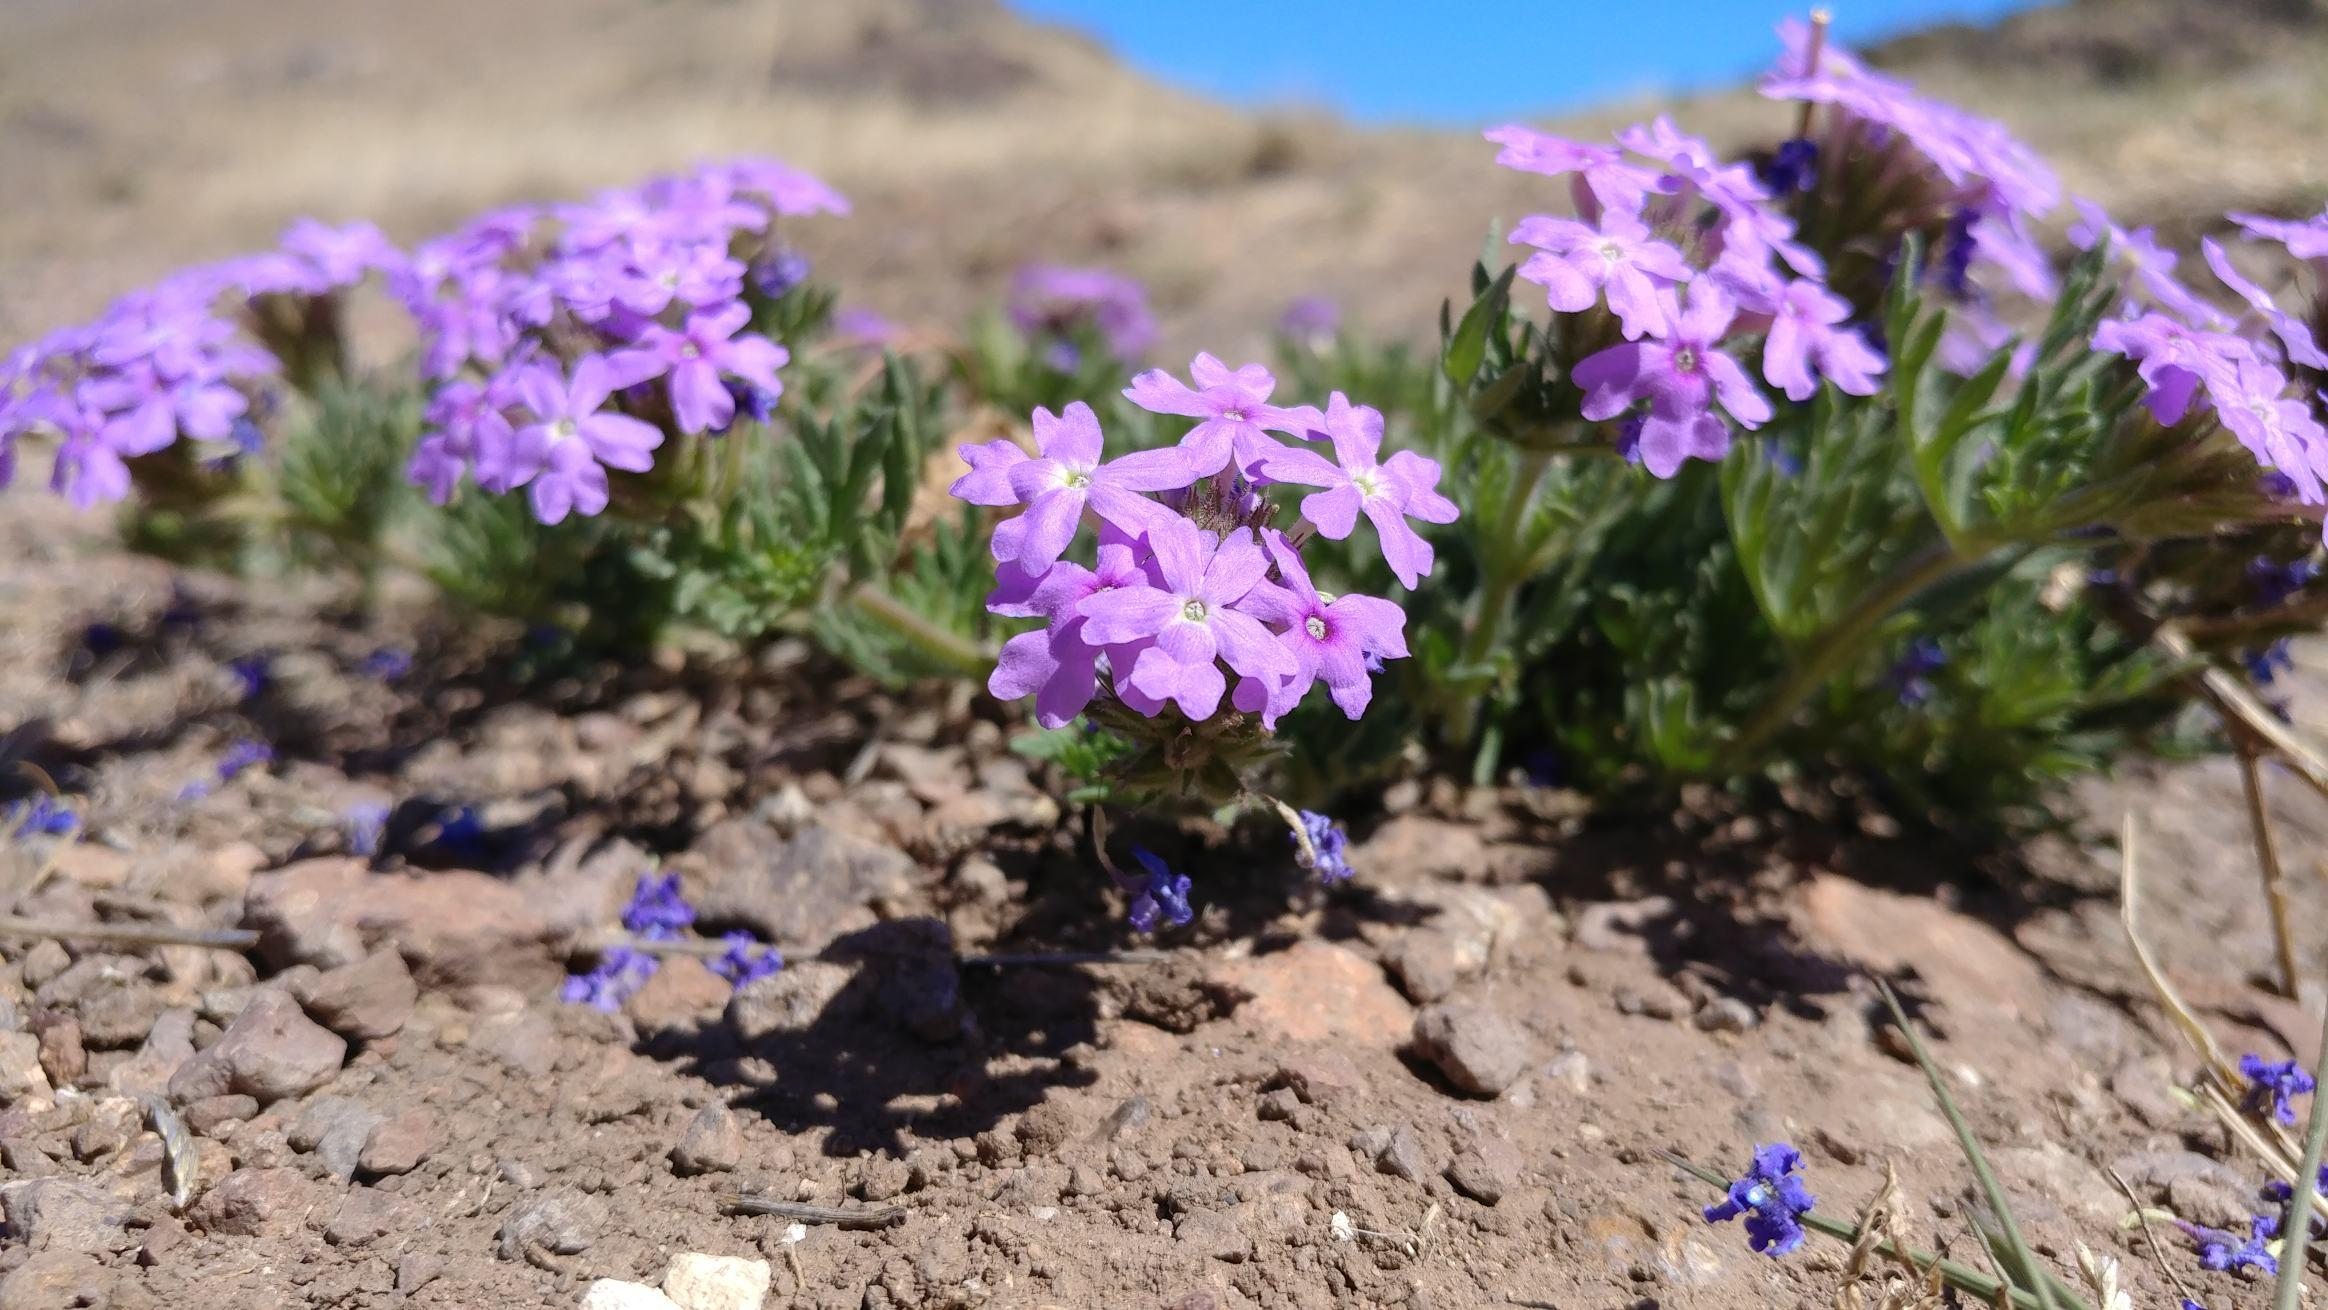 The first wild flowers of the year are blooming at Alta Marfa. (photo credit to George)